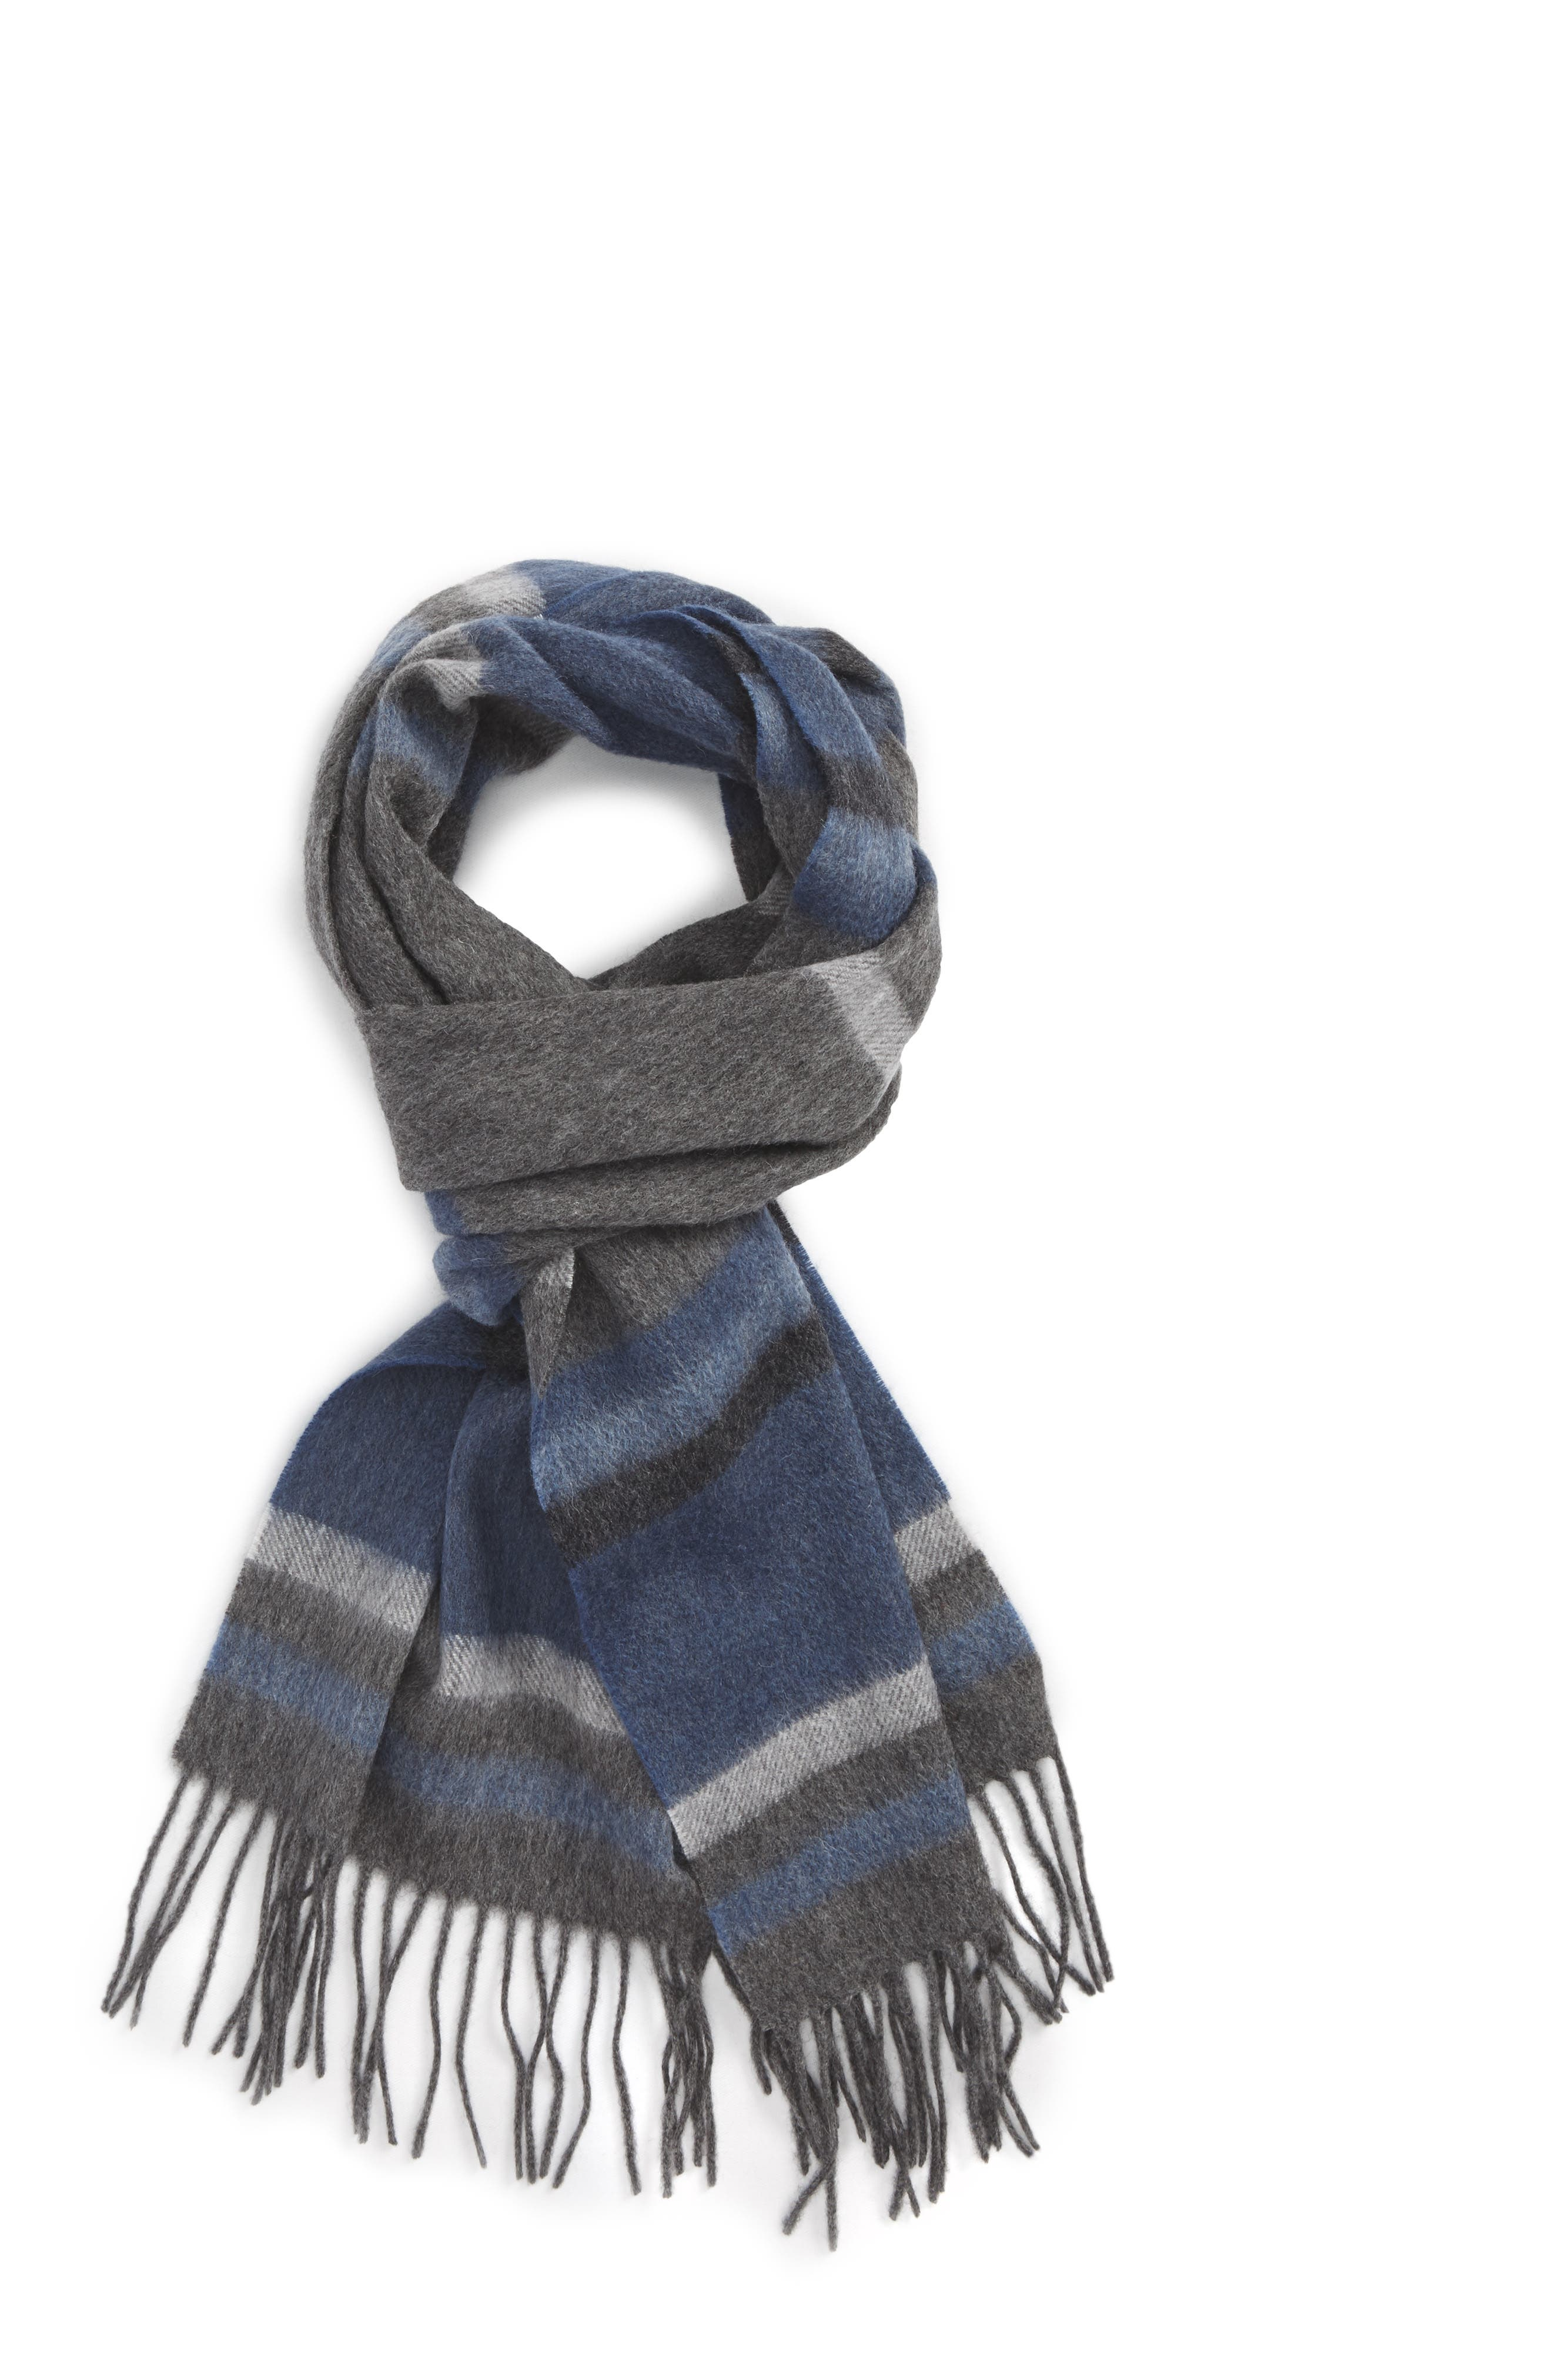 Multistripe Lambswool Scarf,                             Main thumbnail 1, color,                             Grey- Blue Multi Stripe